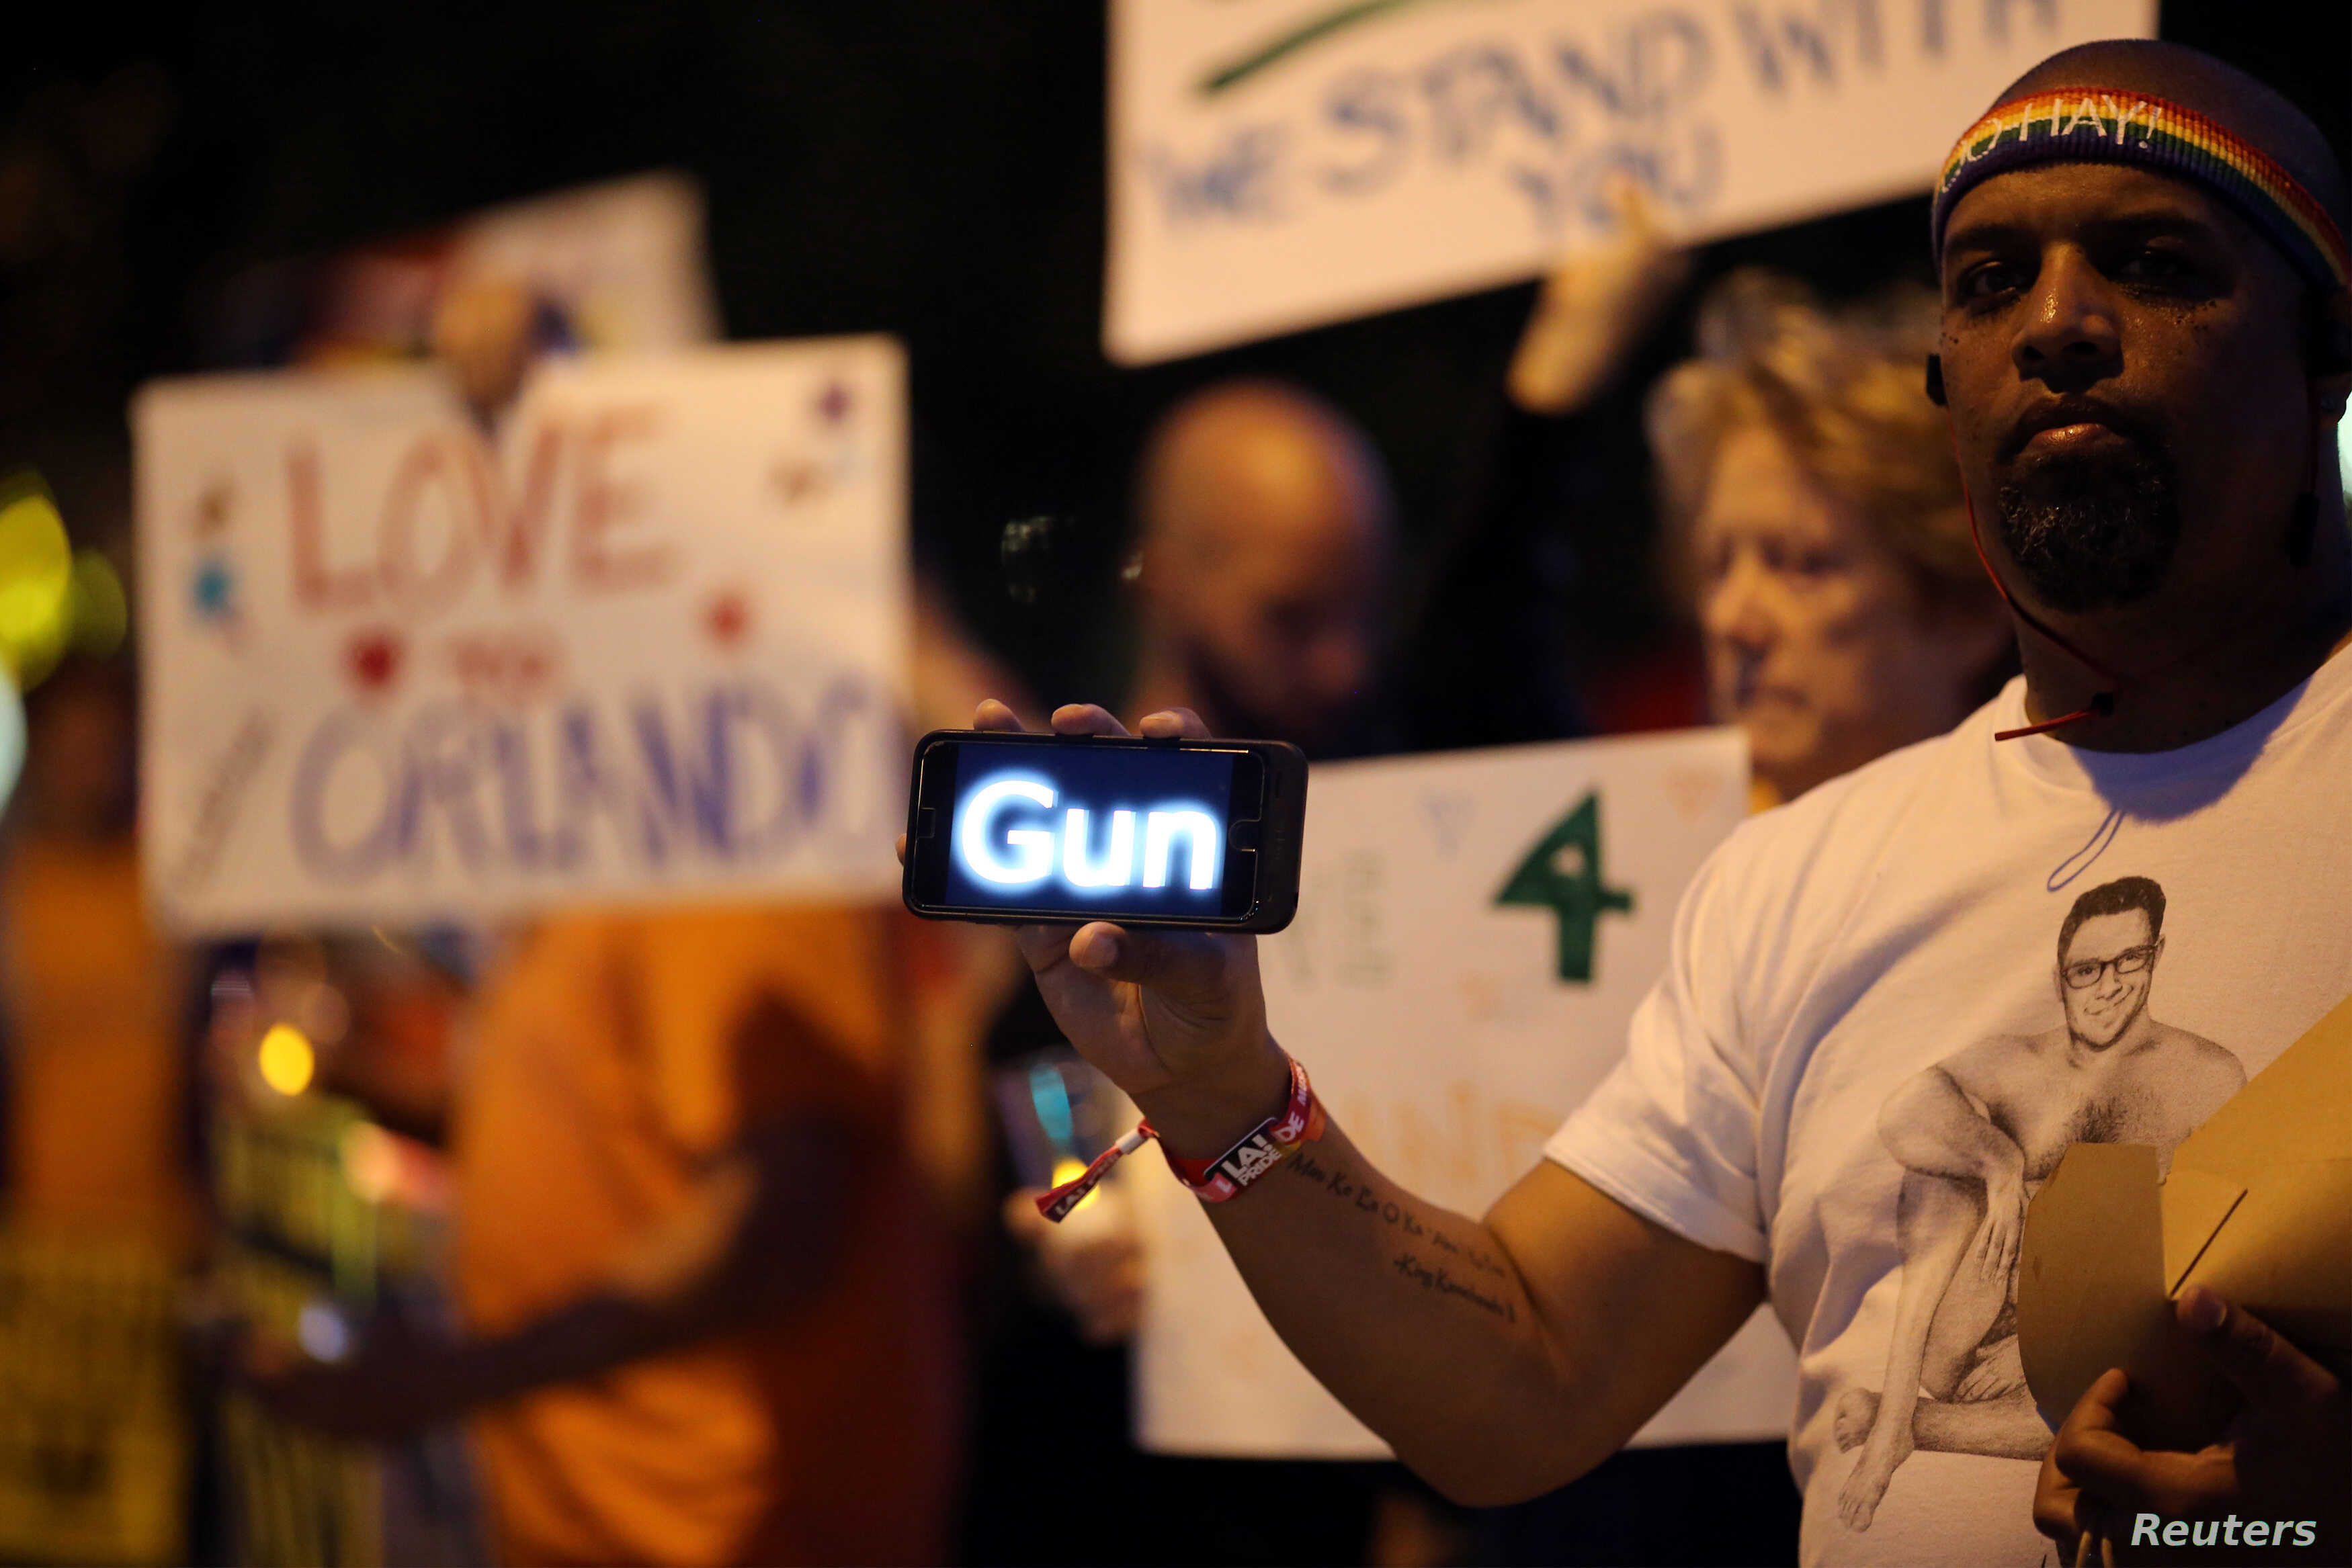 A man holds a scrolling message about guns on his smart phone at a candlelight vigil in West Hollywood, California, following the early morning attacks on a gay night club in Orlando, Florida, U.S. June 12, 2016.